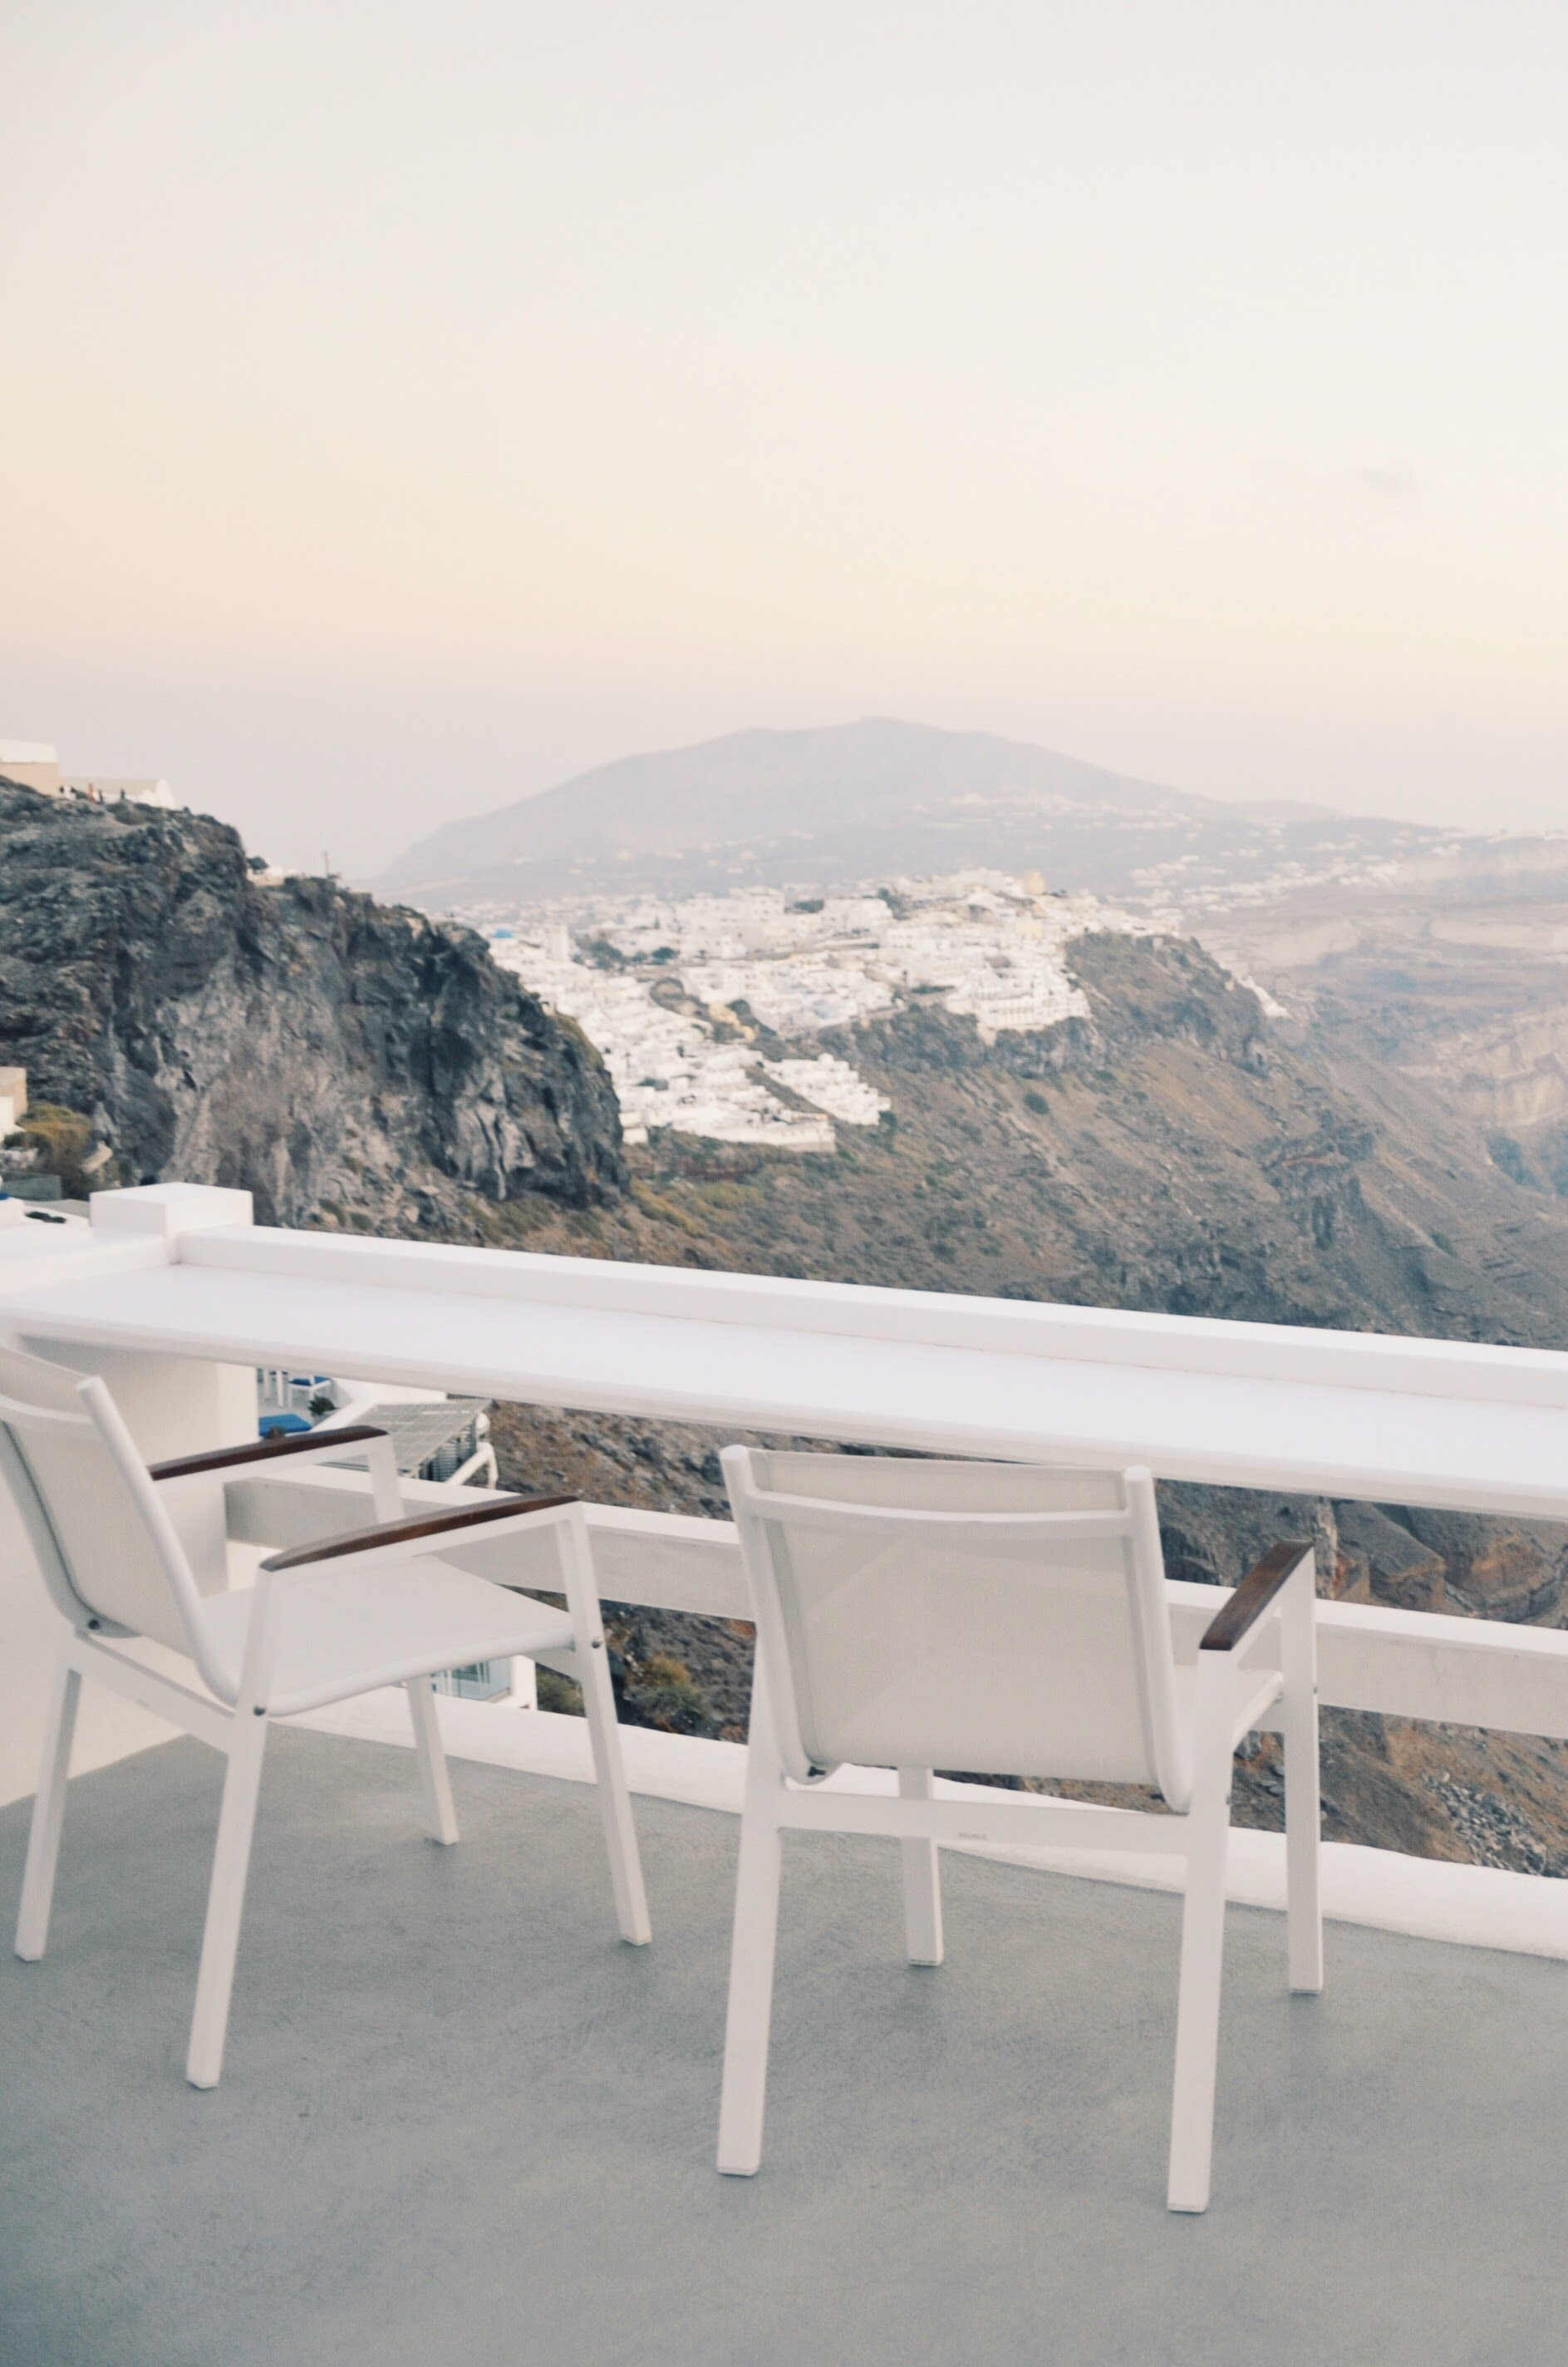 View from the balcony at the Aqua Luxury Suites in Imerovigli, Santorini, Greece